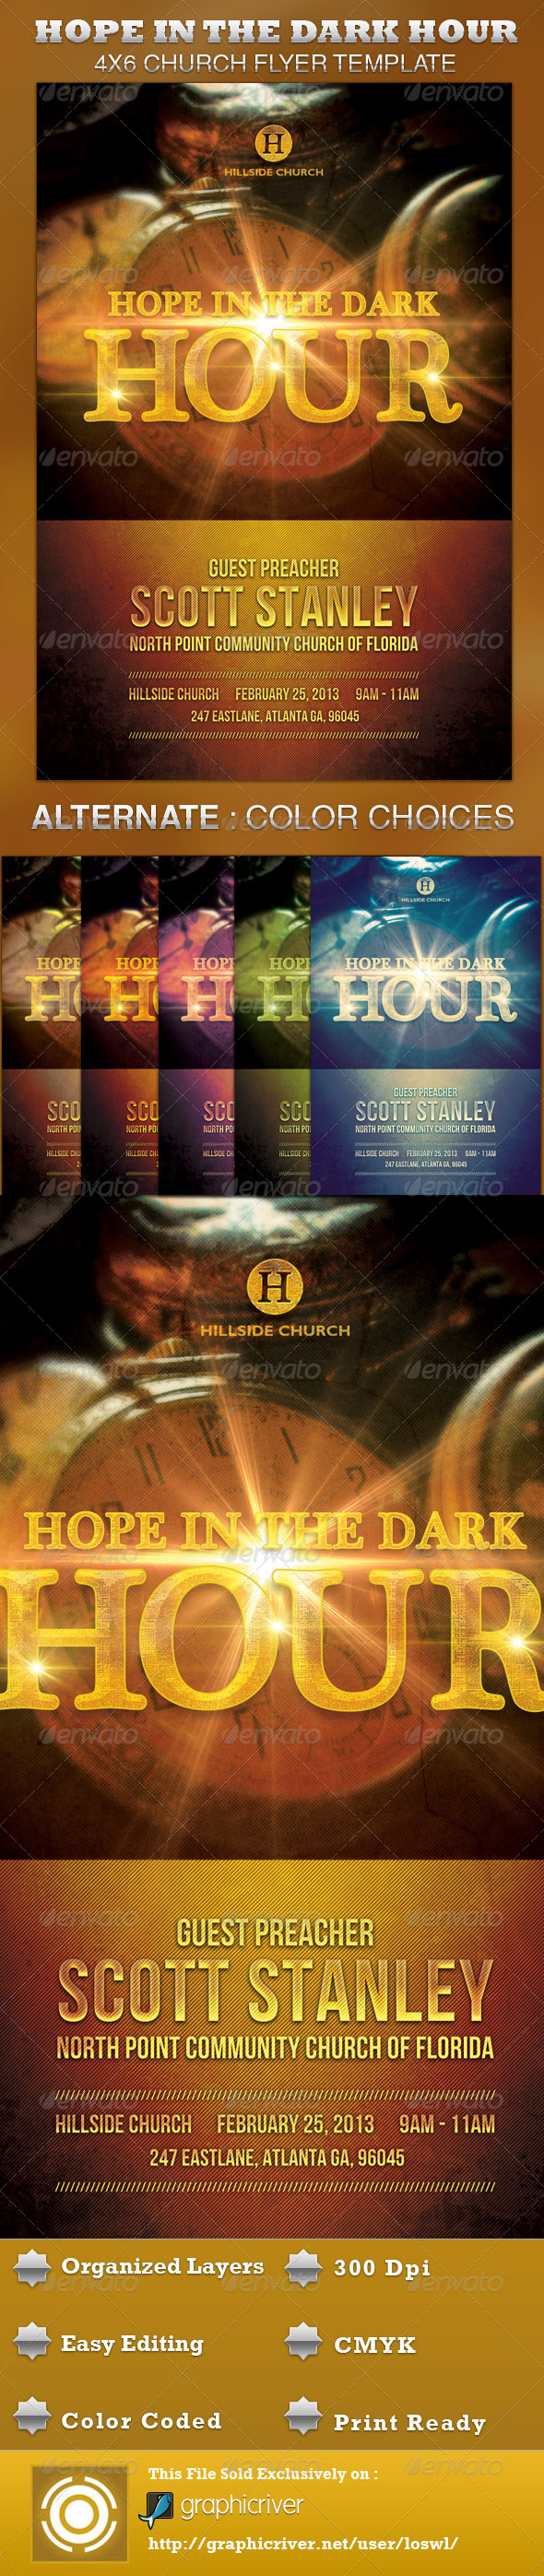 Hope in the Dark Hour Church Flyer Template - Church Flyers